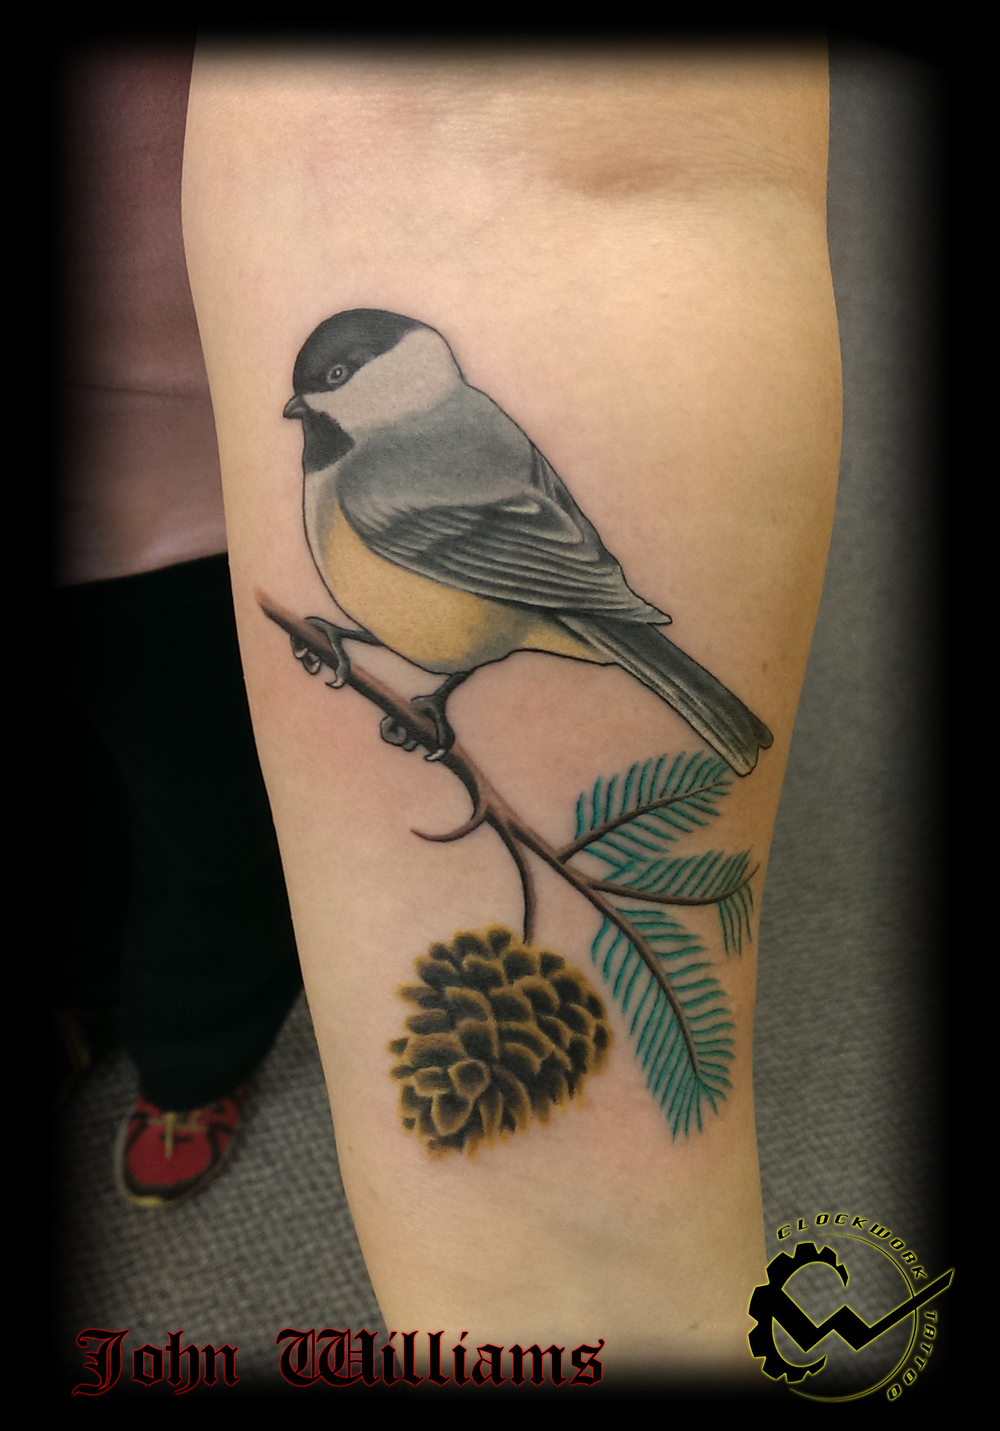 johnbirdtattoo.jpg